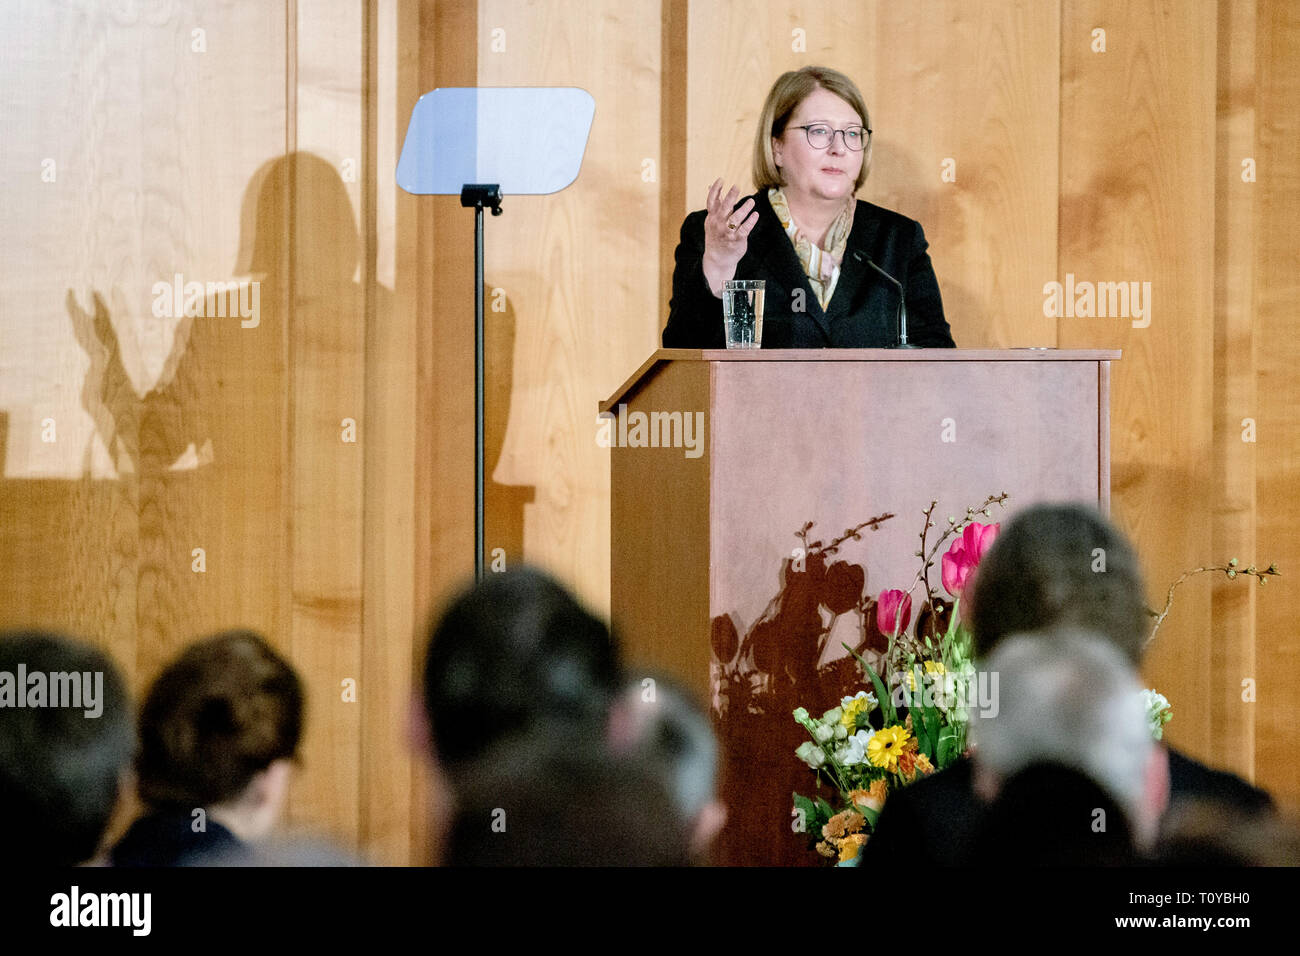 Berlin, Germany. 22nd Mar, 2019. Antje Leendertse, State Secretary at the Federal Foreign Office, will address you as his successor at the handover of office from Foreign State Secretary Lindner. Credit: Christoph Soeder/dpa/Alamy Live News - Stock Image